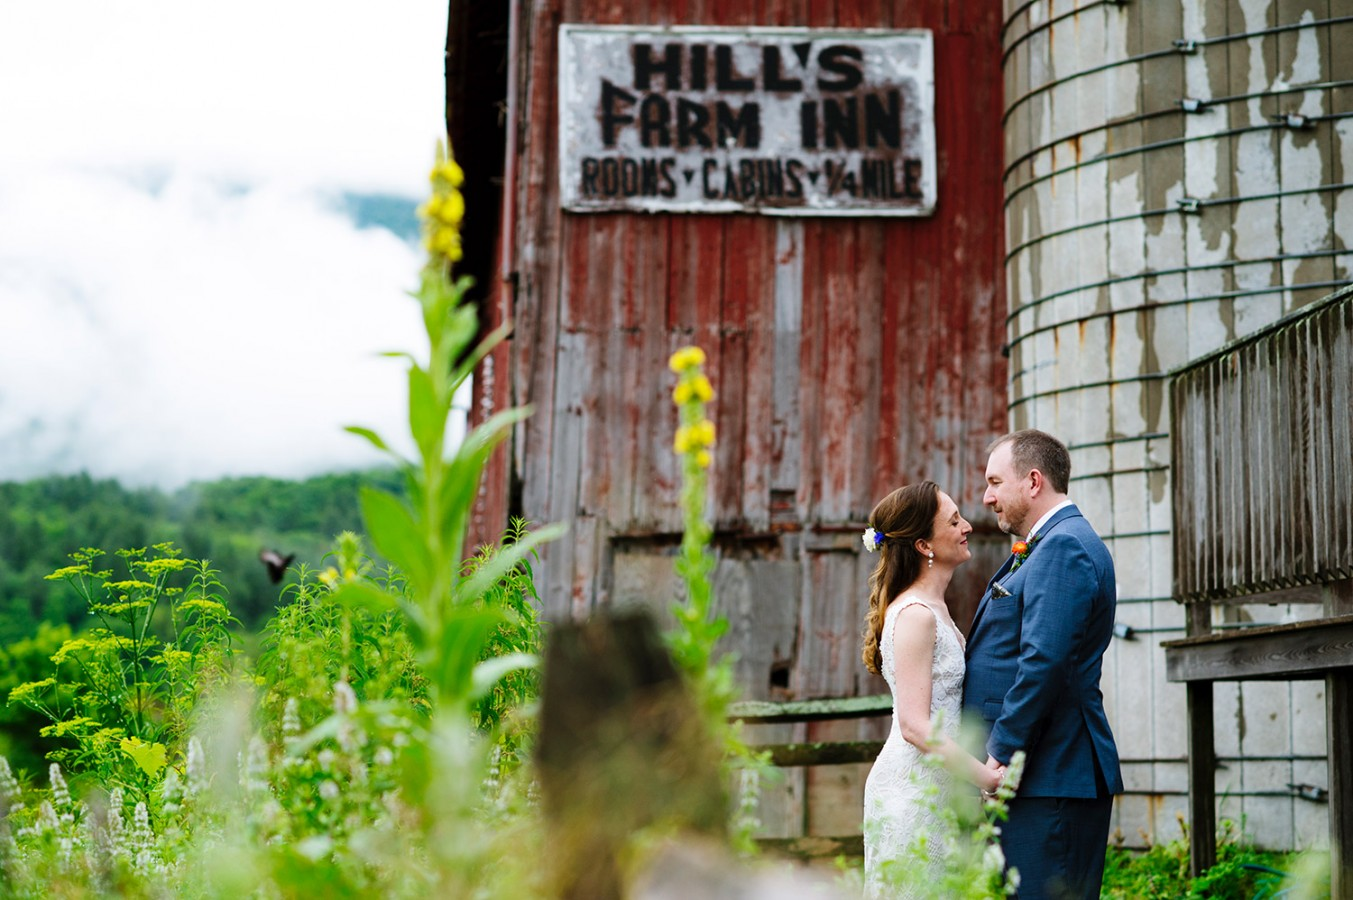 hill-farm-inn-weddings-012